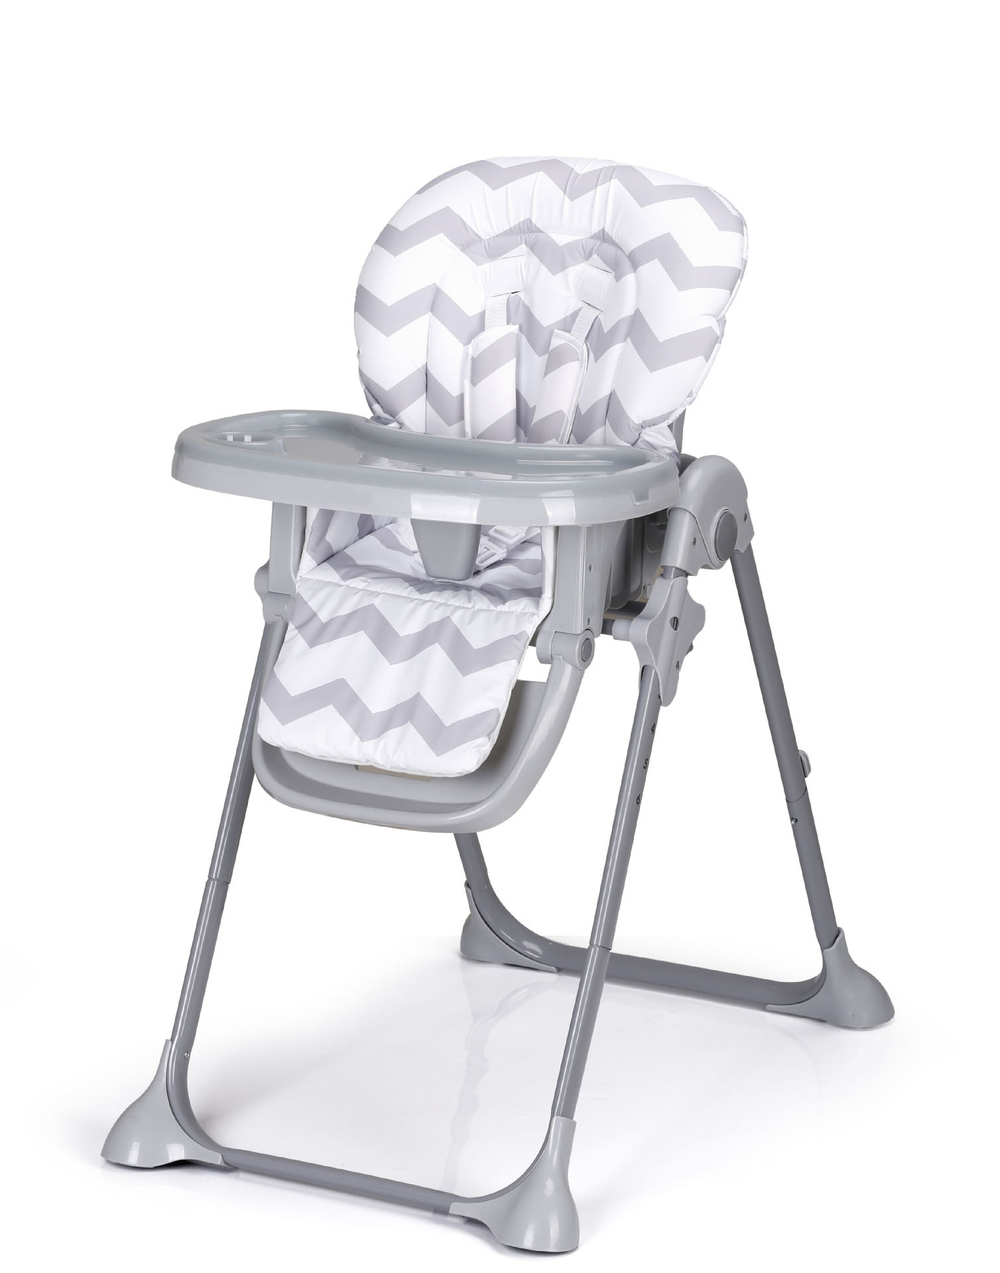 Plastic baby high chair baby feeding chair HR-B-002S